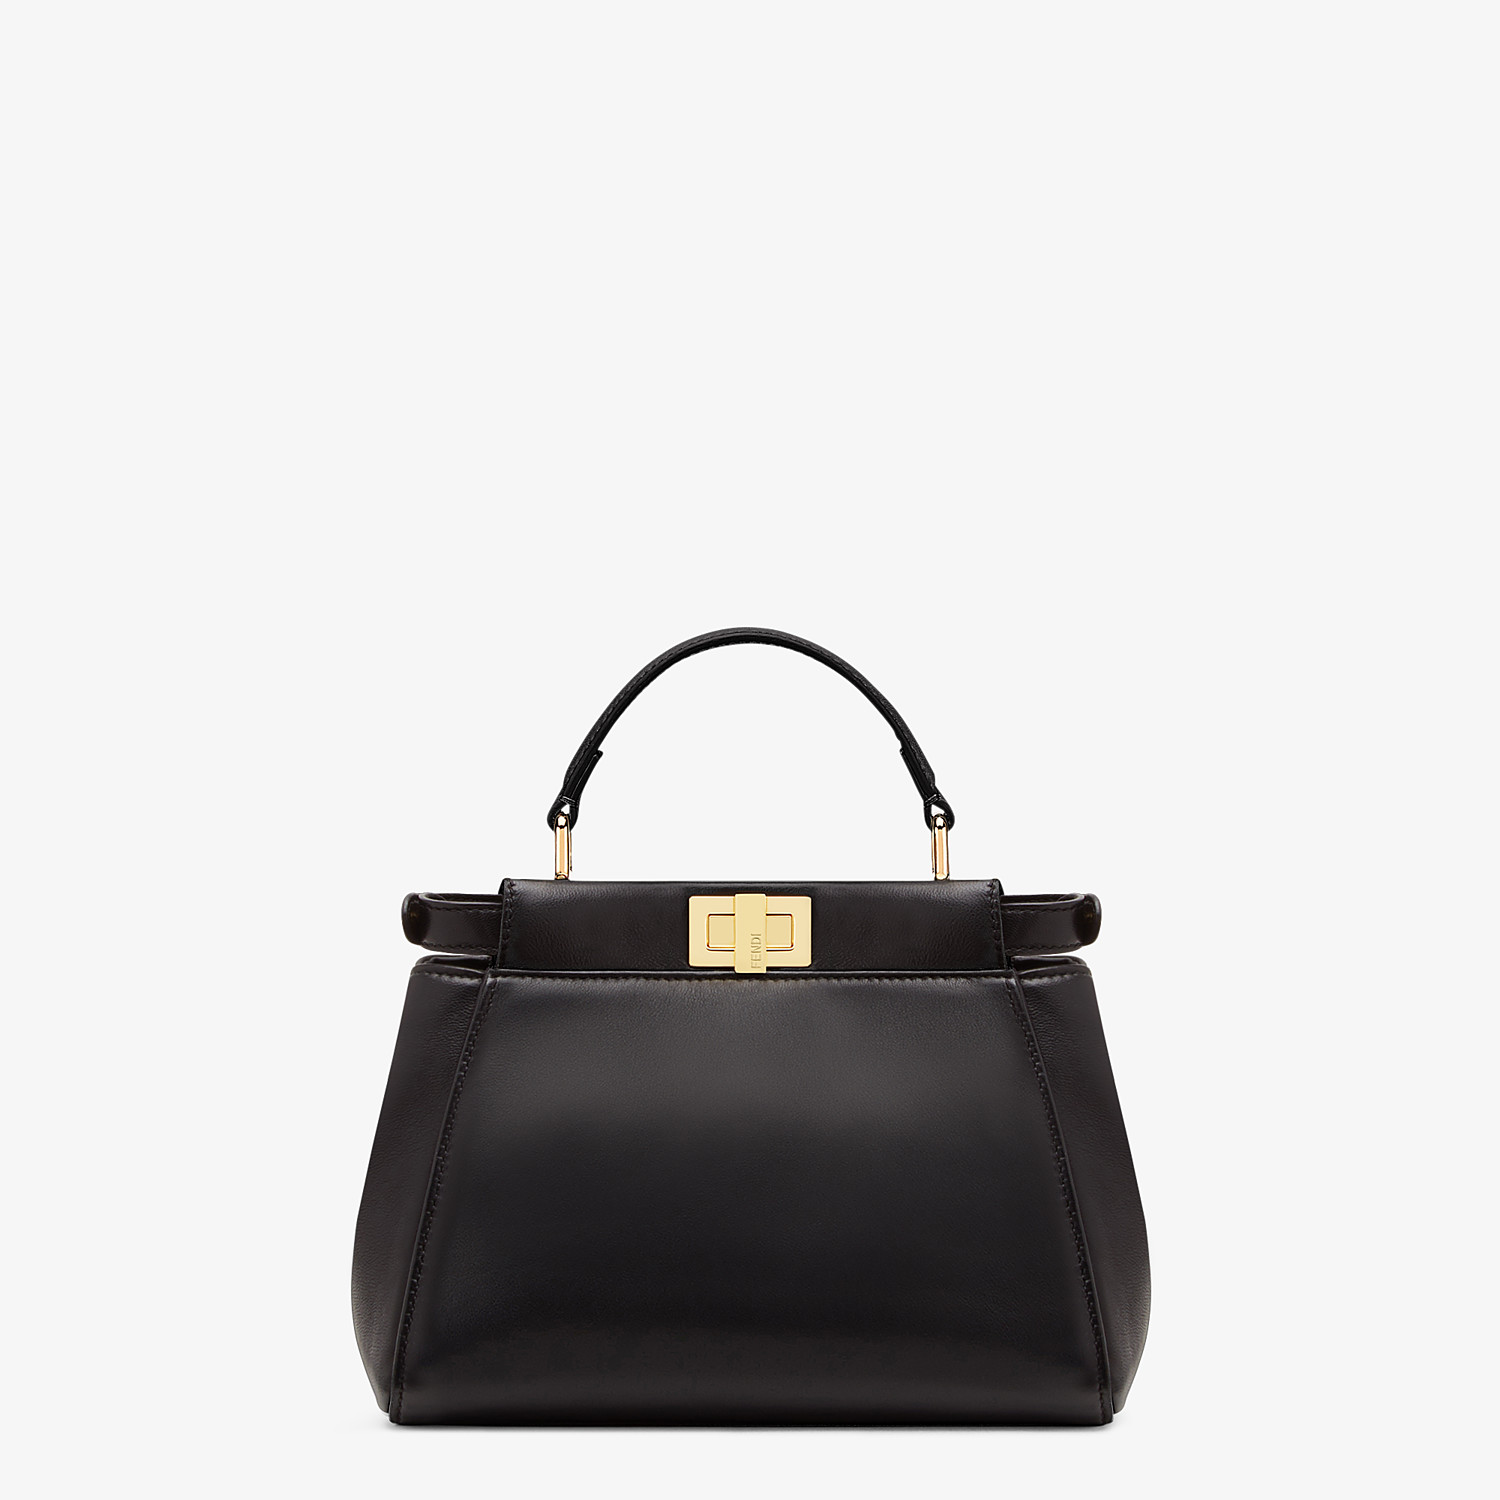 FENDI PEEKABOO ICONIC MINI - Black nappa leather bag - view 4 detail